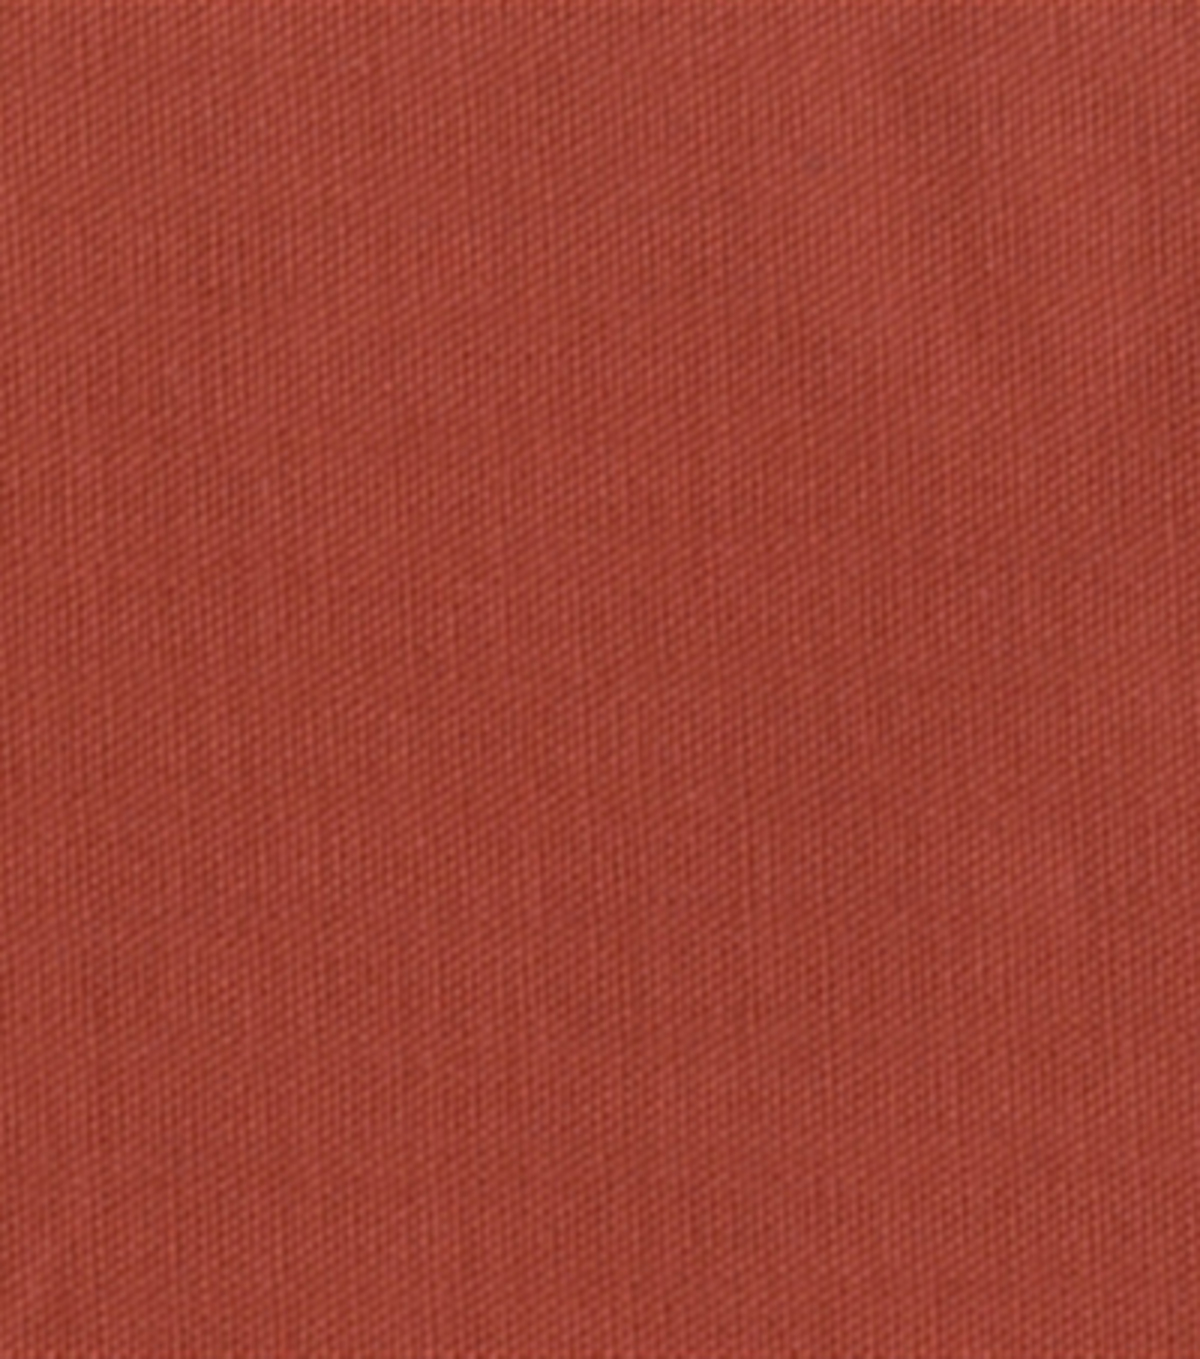 Home Decor 8\u0022x8\u0022 Fabric Swatch-Covington Spinnaker 378 Coral Red